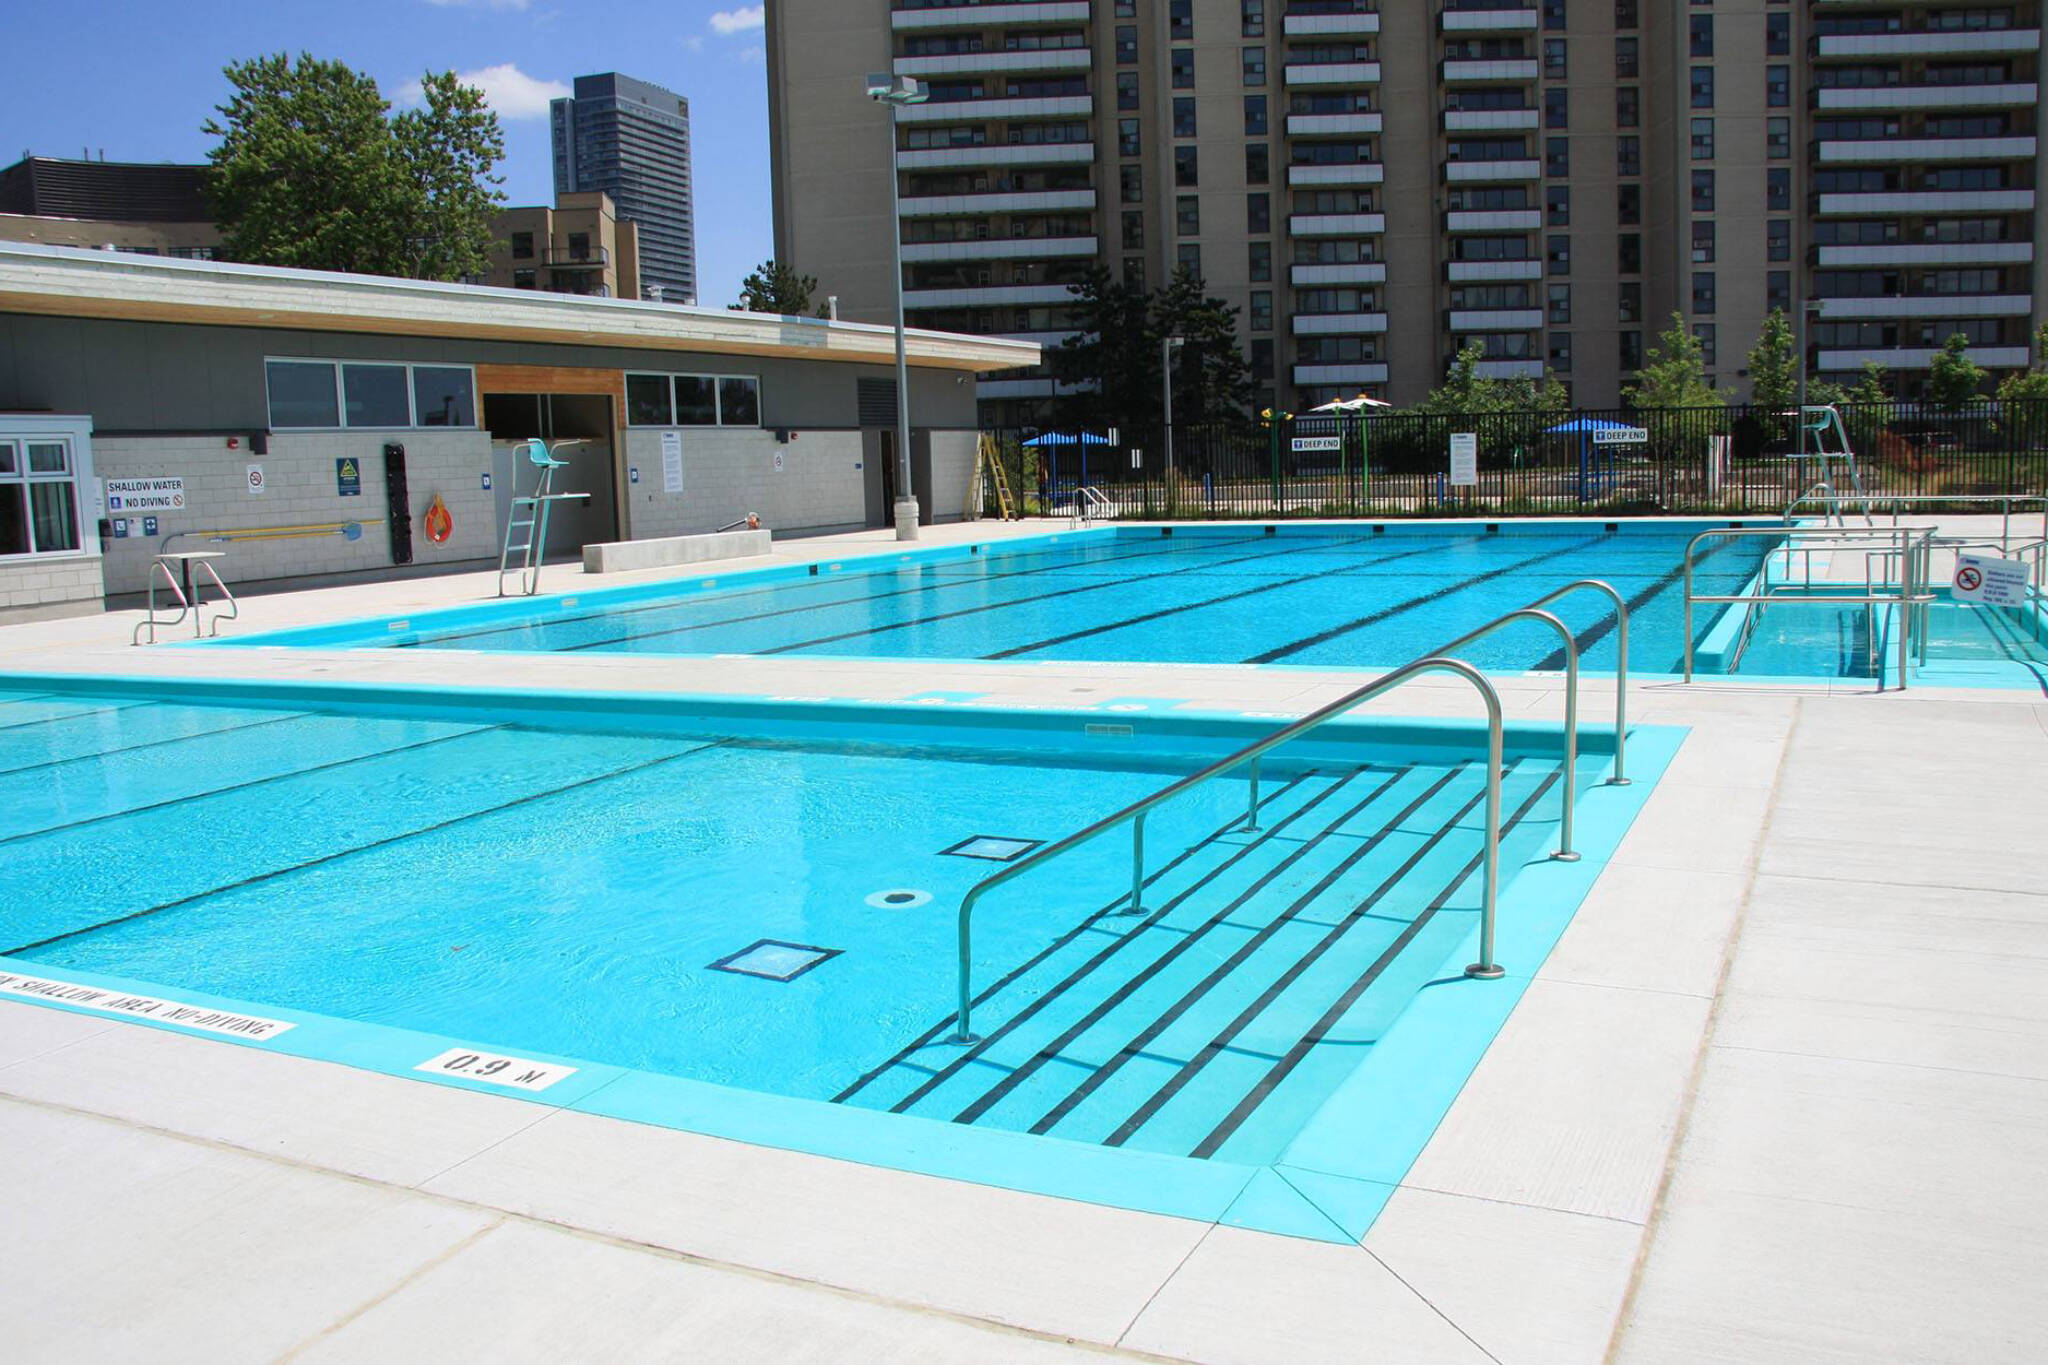 outdoor pools toronto